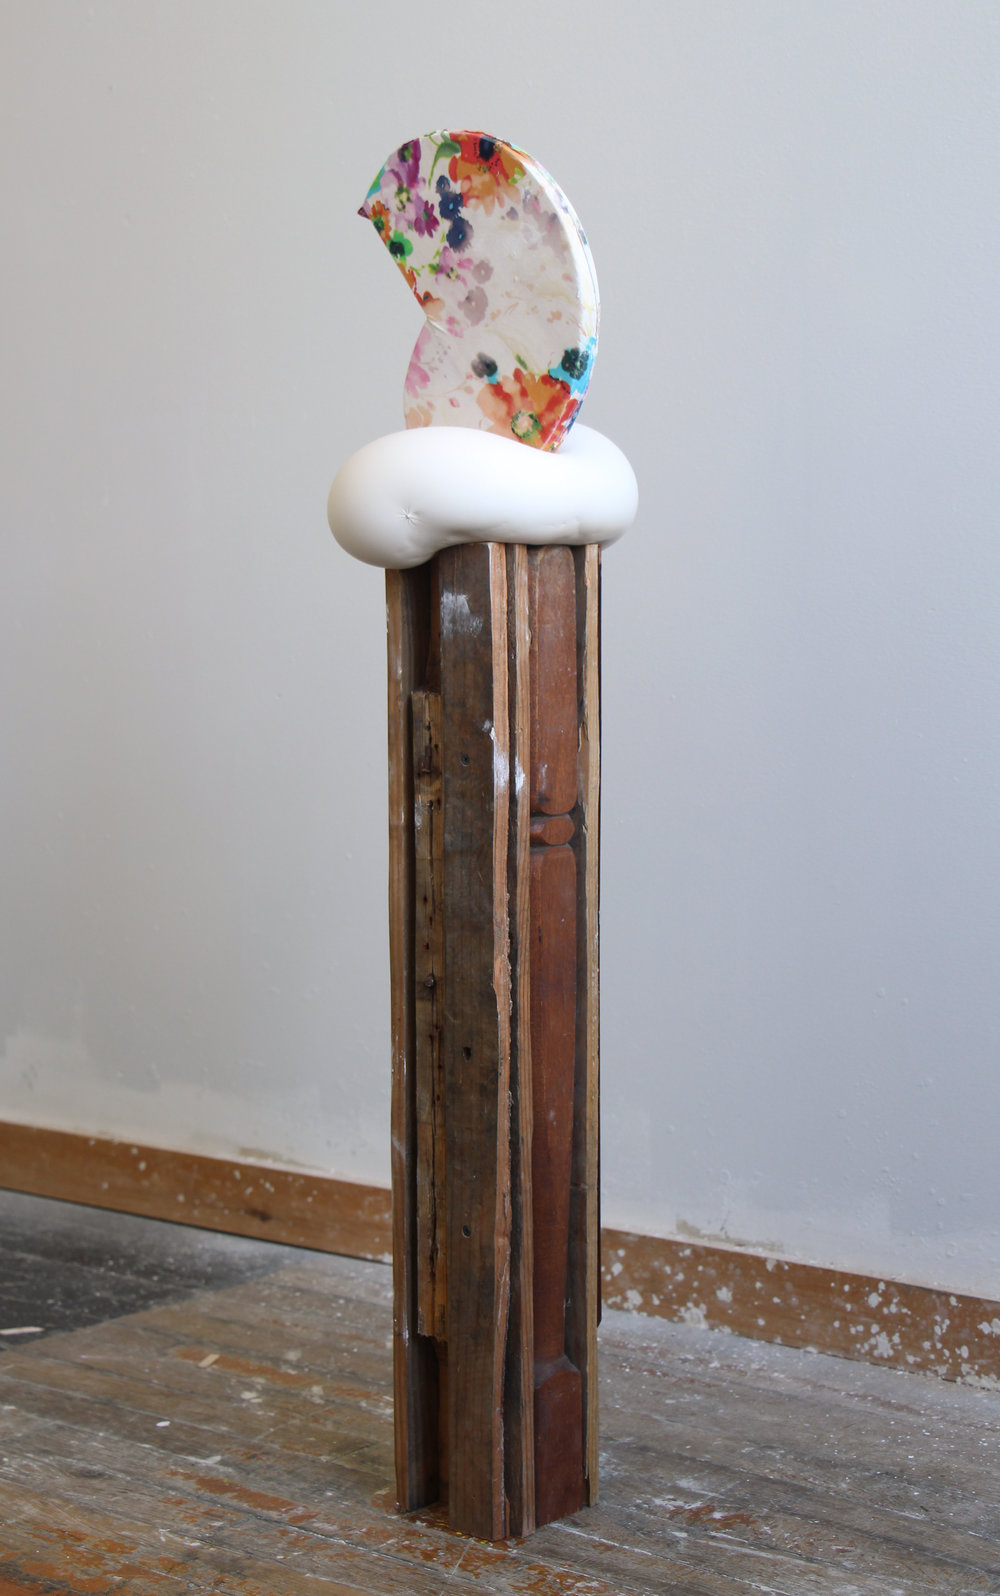 "And as Honeysuckle Is Sweet so Is This Flower Salt, 2016 plaster, fabric, wood 39 x 9 x 9"" (with base)"